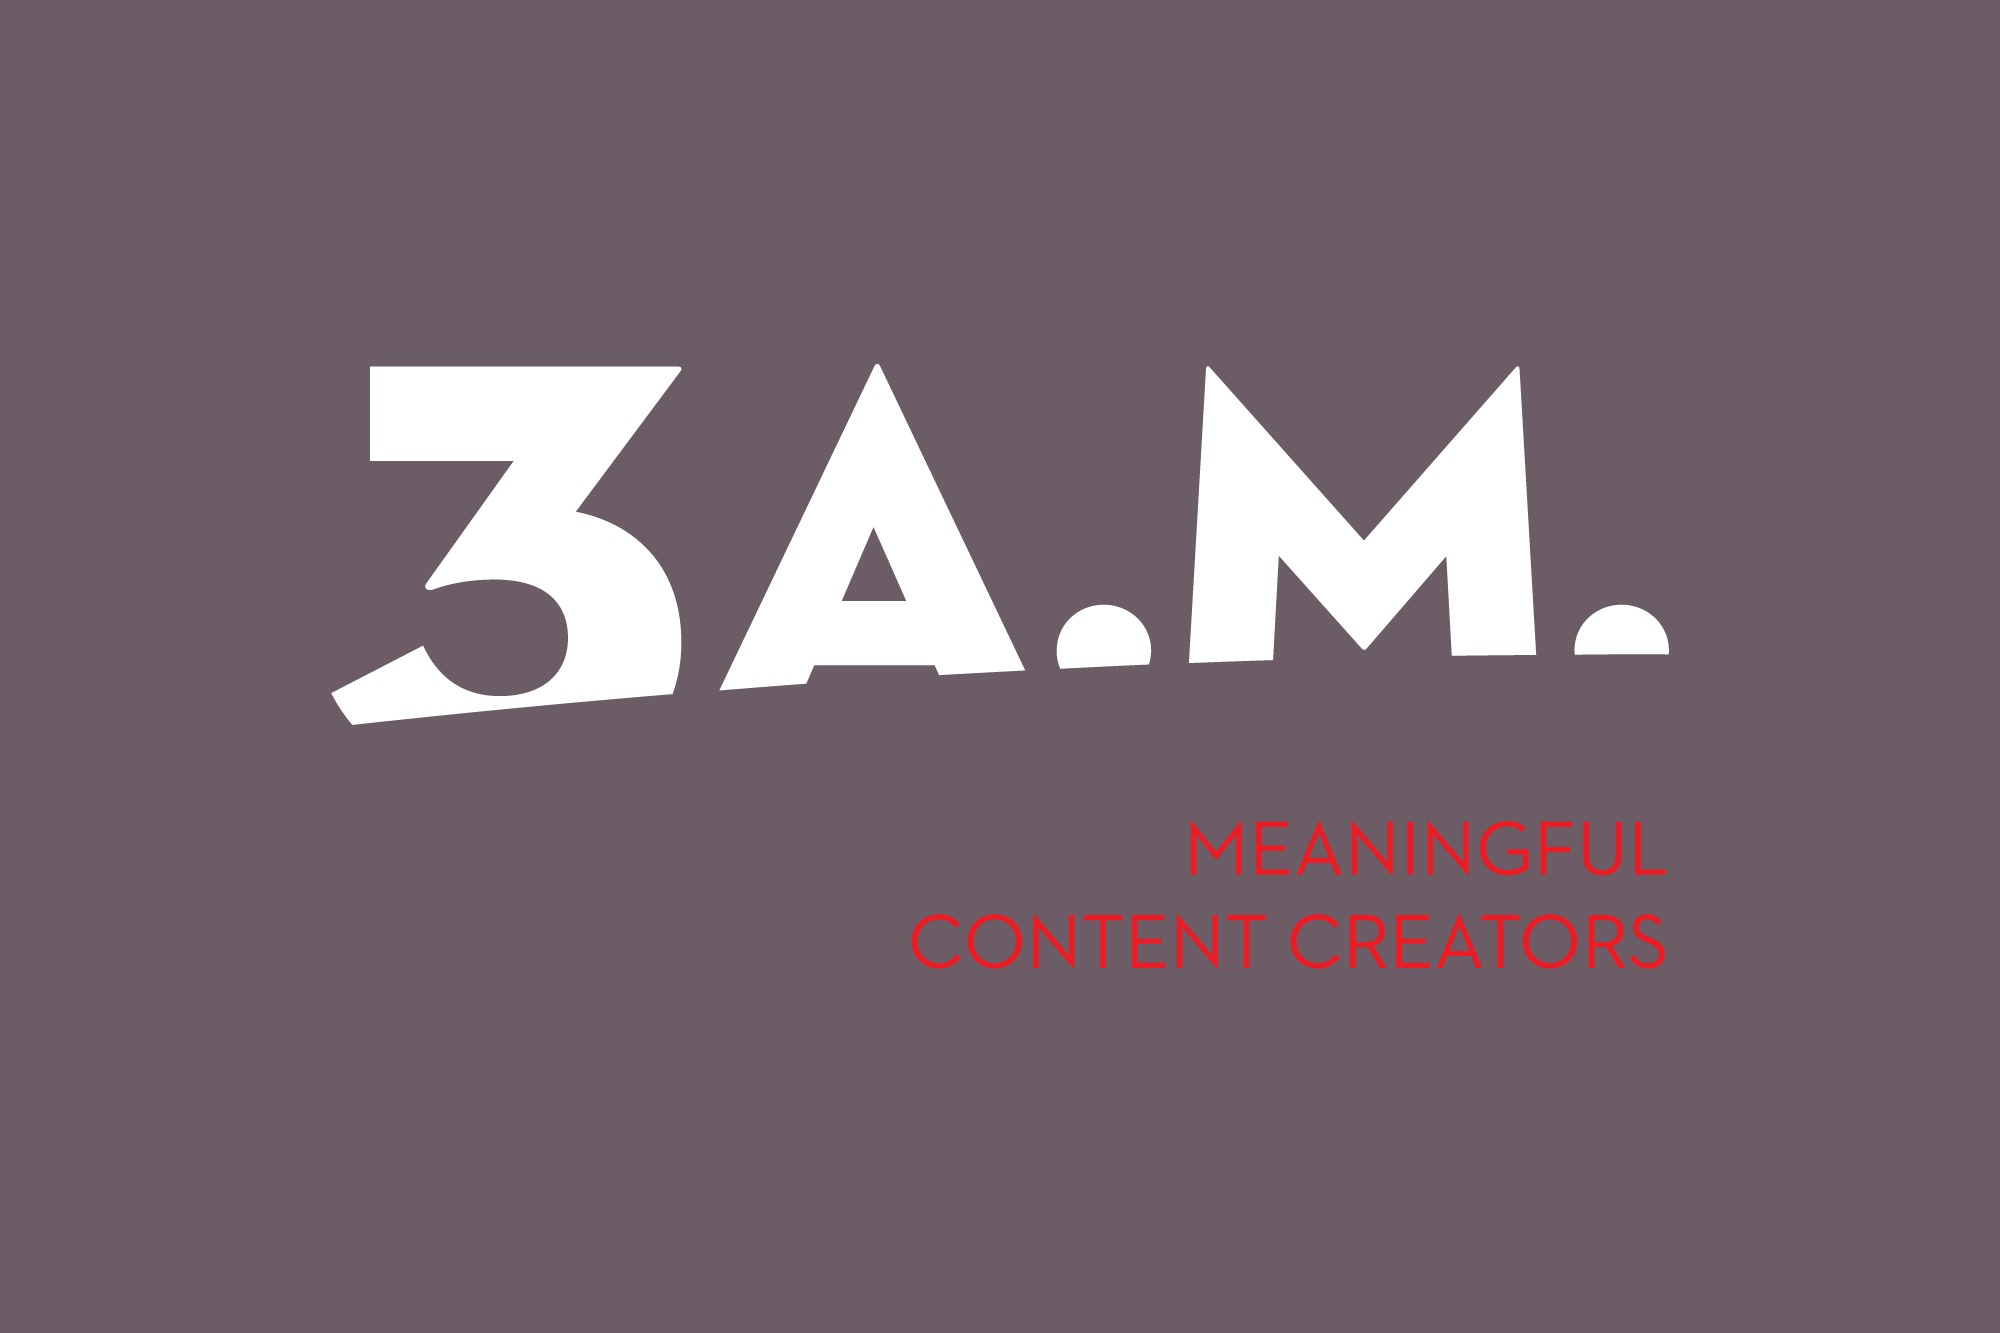 3inabox_Logos_3am_01